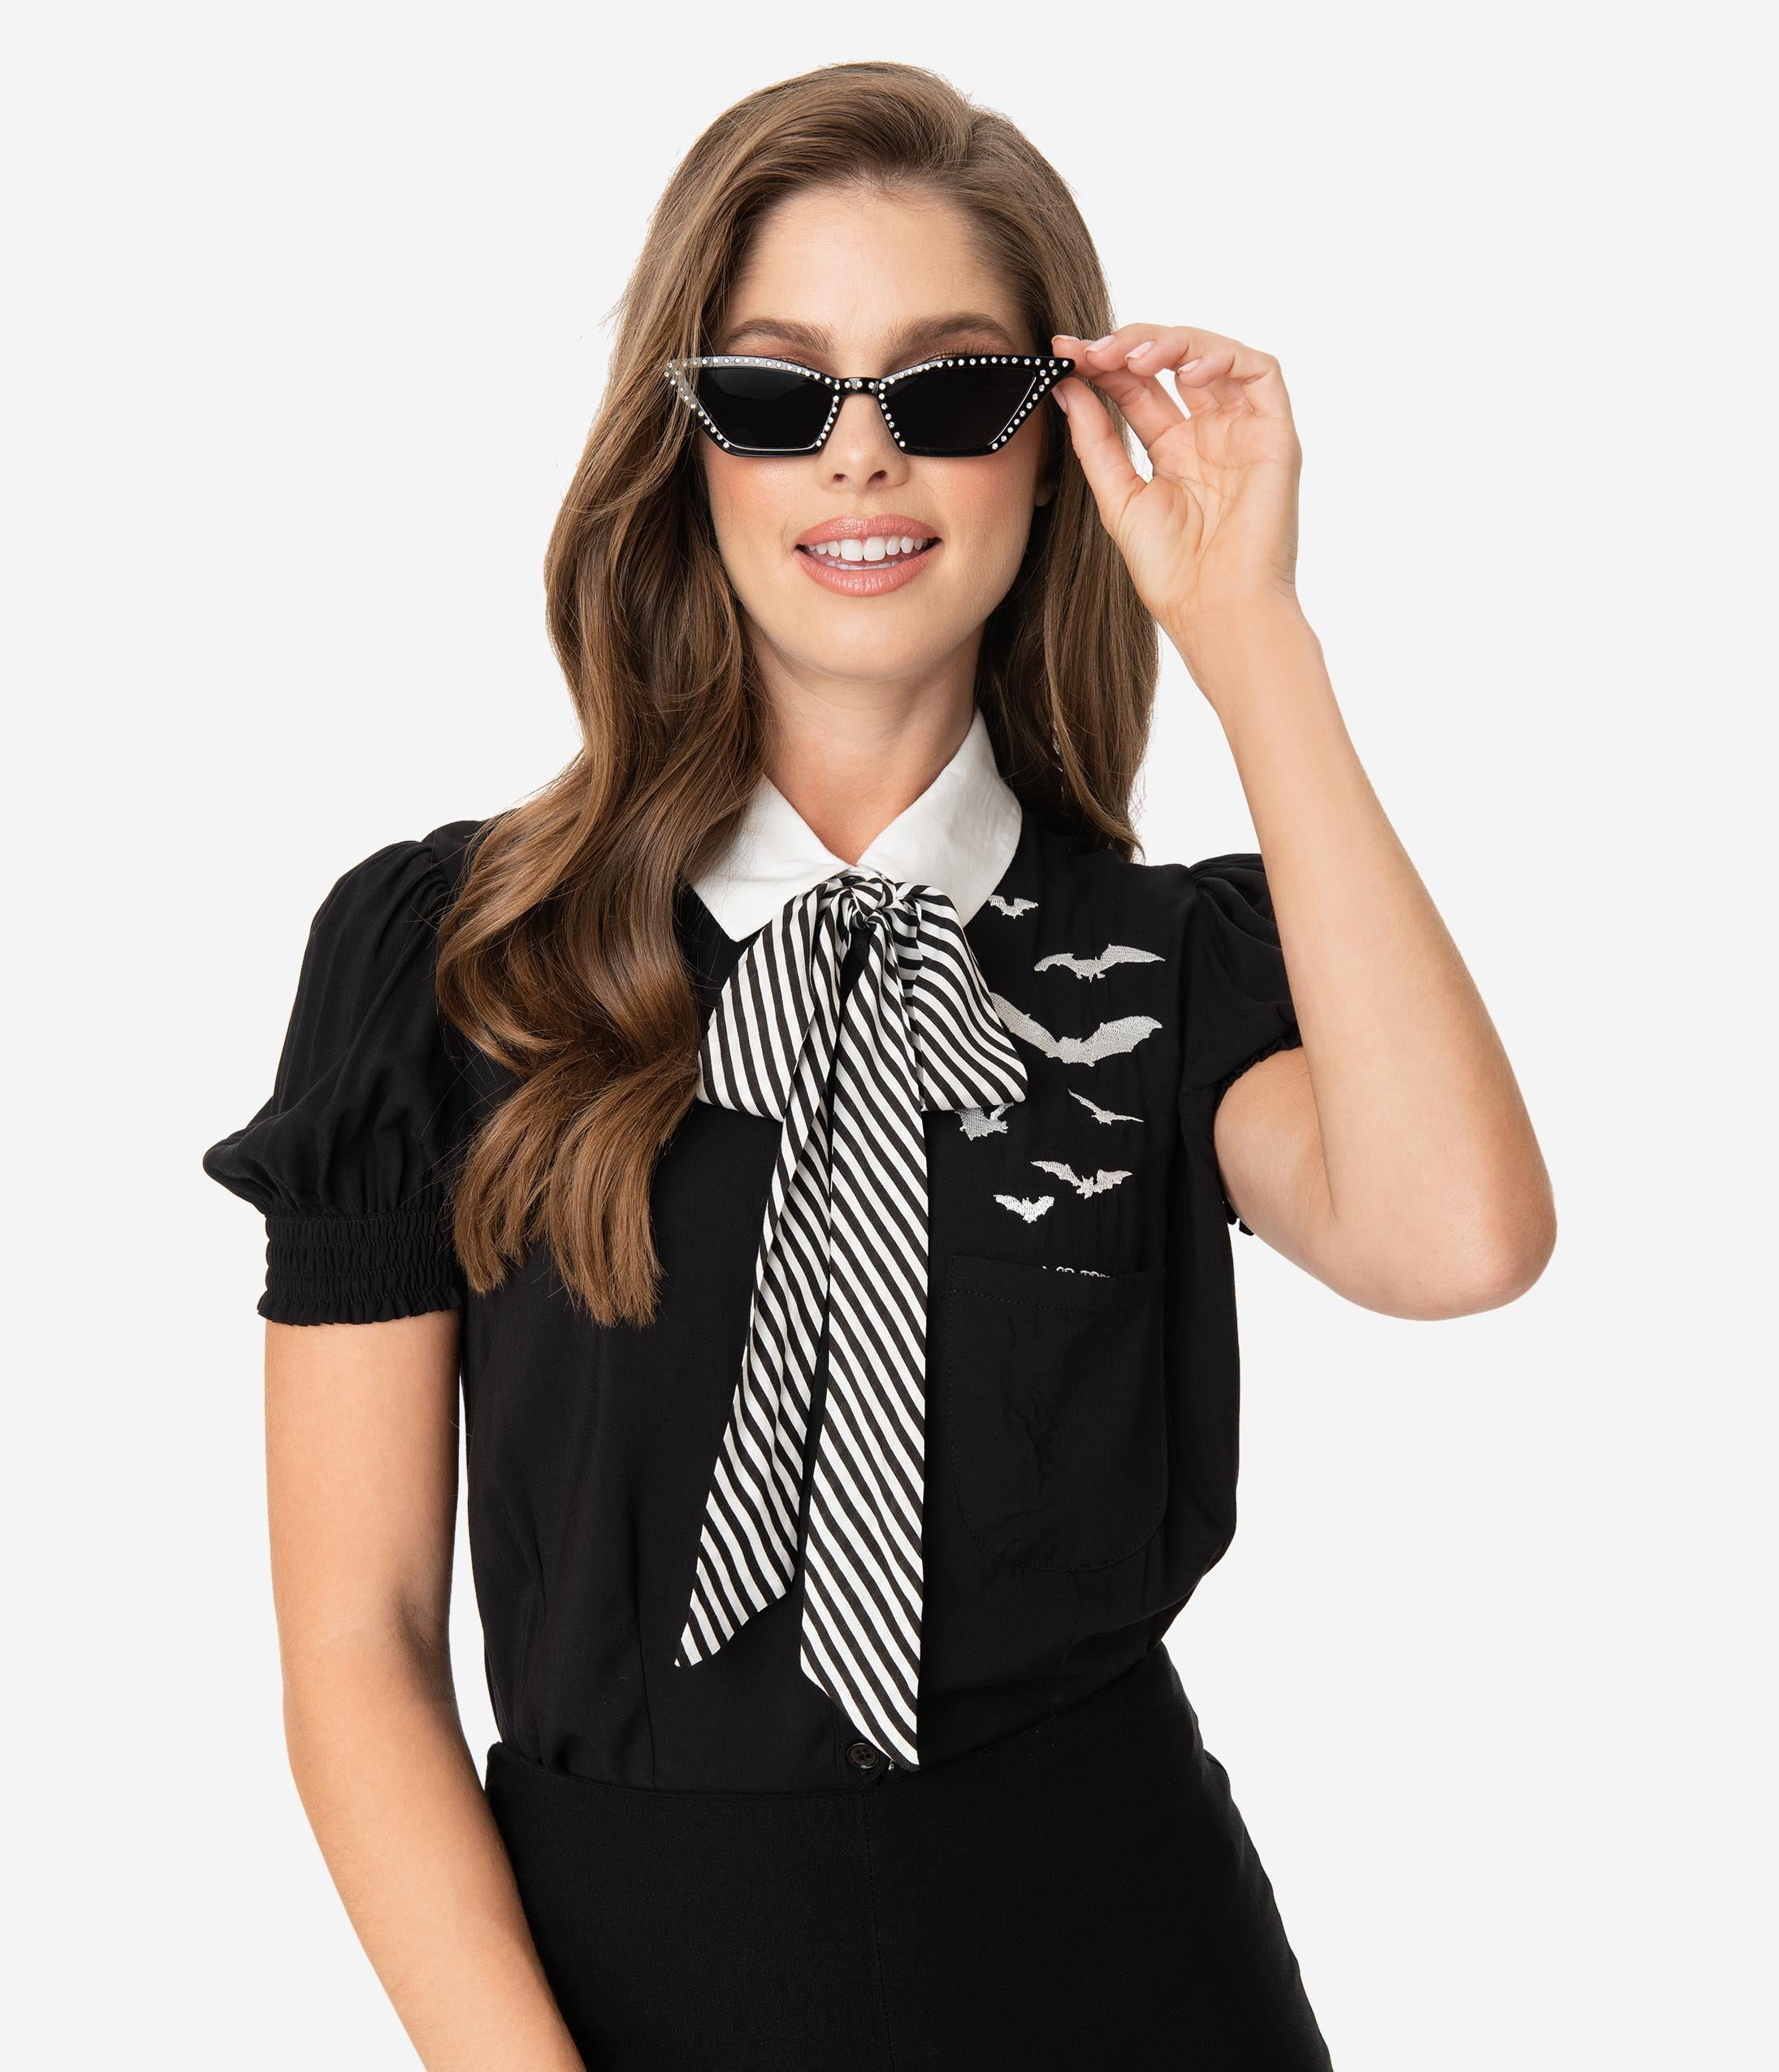 Vintage Retro Halloween Themed Clothing Hell Bunny 1950S Style Black  White Stripe Bow Tie Trixie Blouse $58.00 AT vintagedancer.com